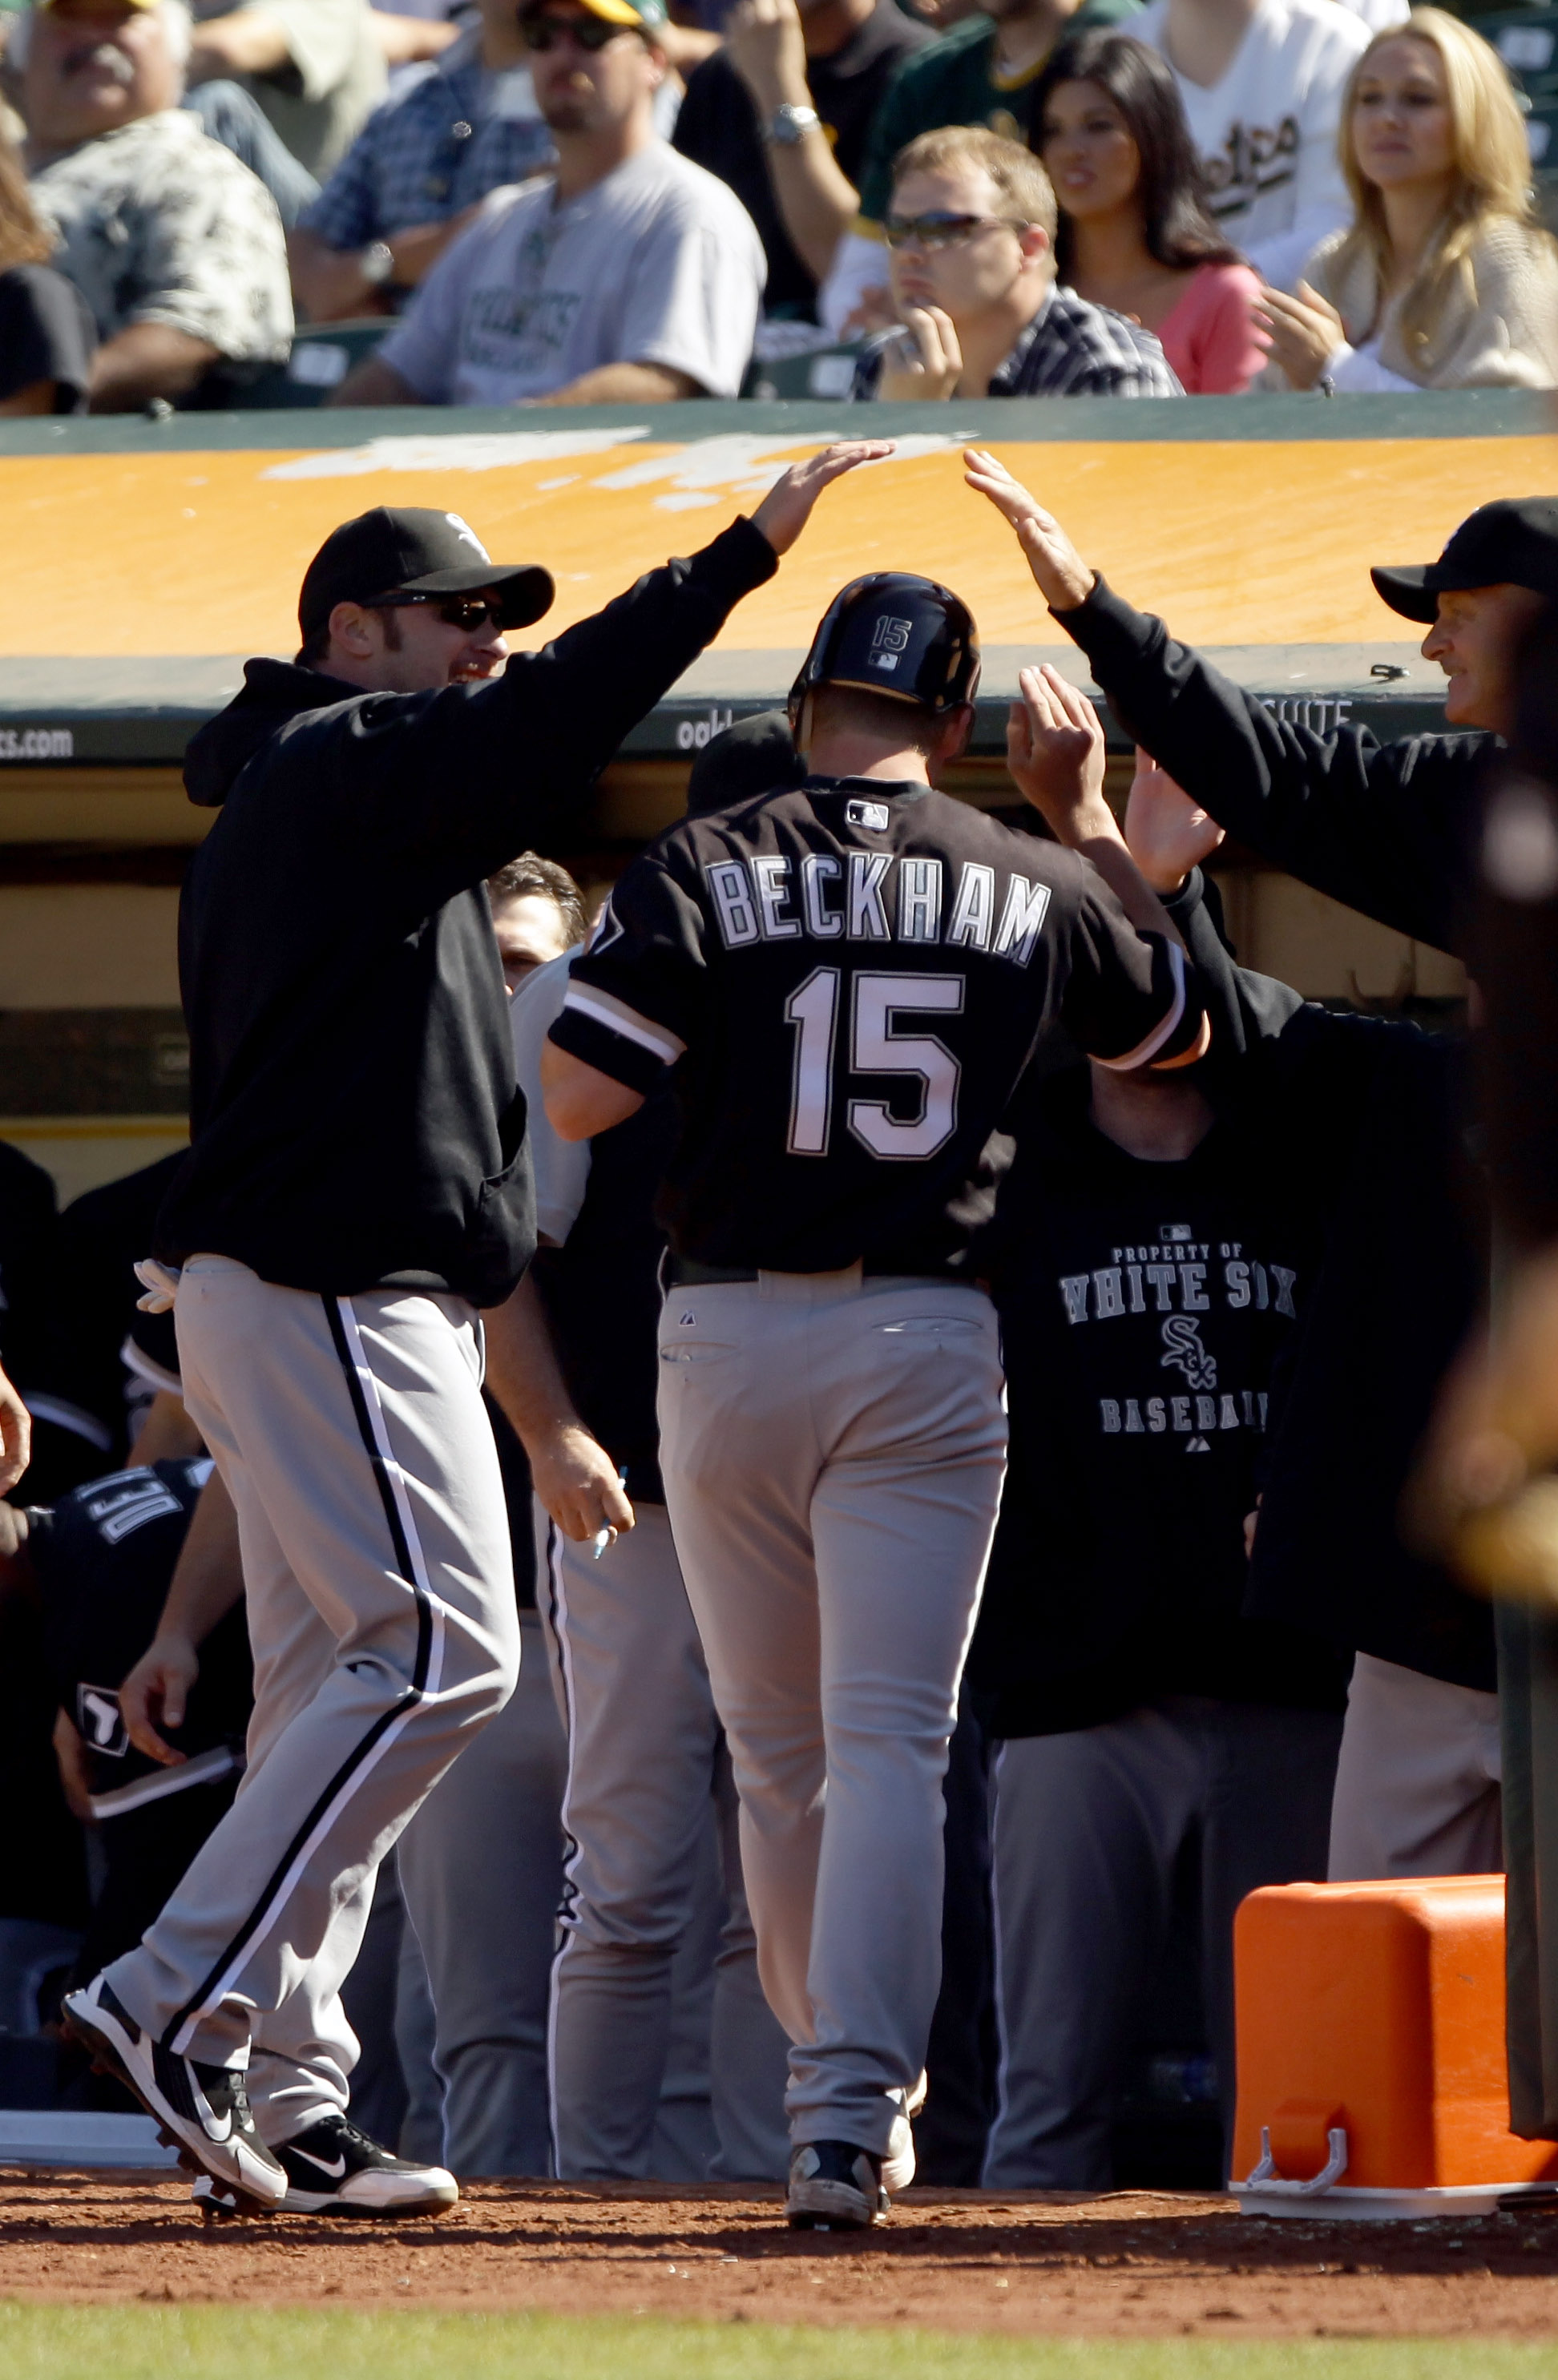 OAKLAND, CA - SEPTEMBER 22:  Gordon Beckham #15 of the Chicago White Sox is congratulated by teammates after he scored on a double by Mark Teahen #23 in the ninth inning to give the White Sox a 4-3 over the Oakland Athletics at the Oakland-Alameda County